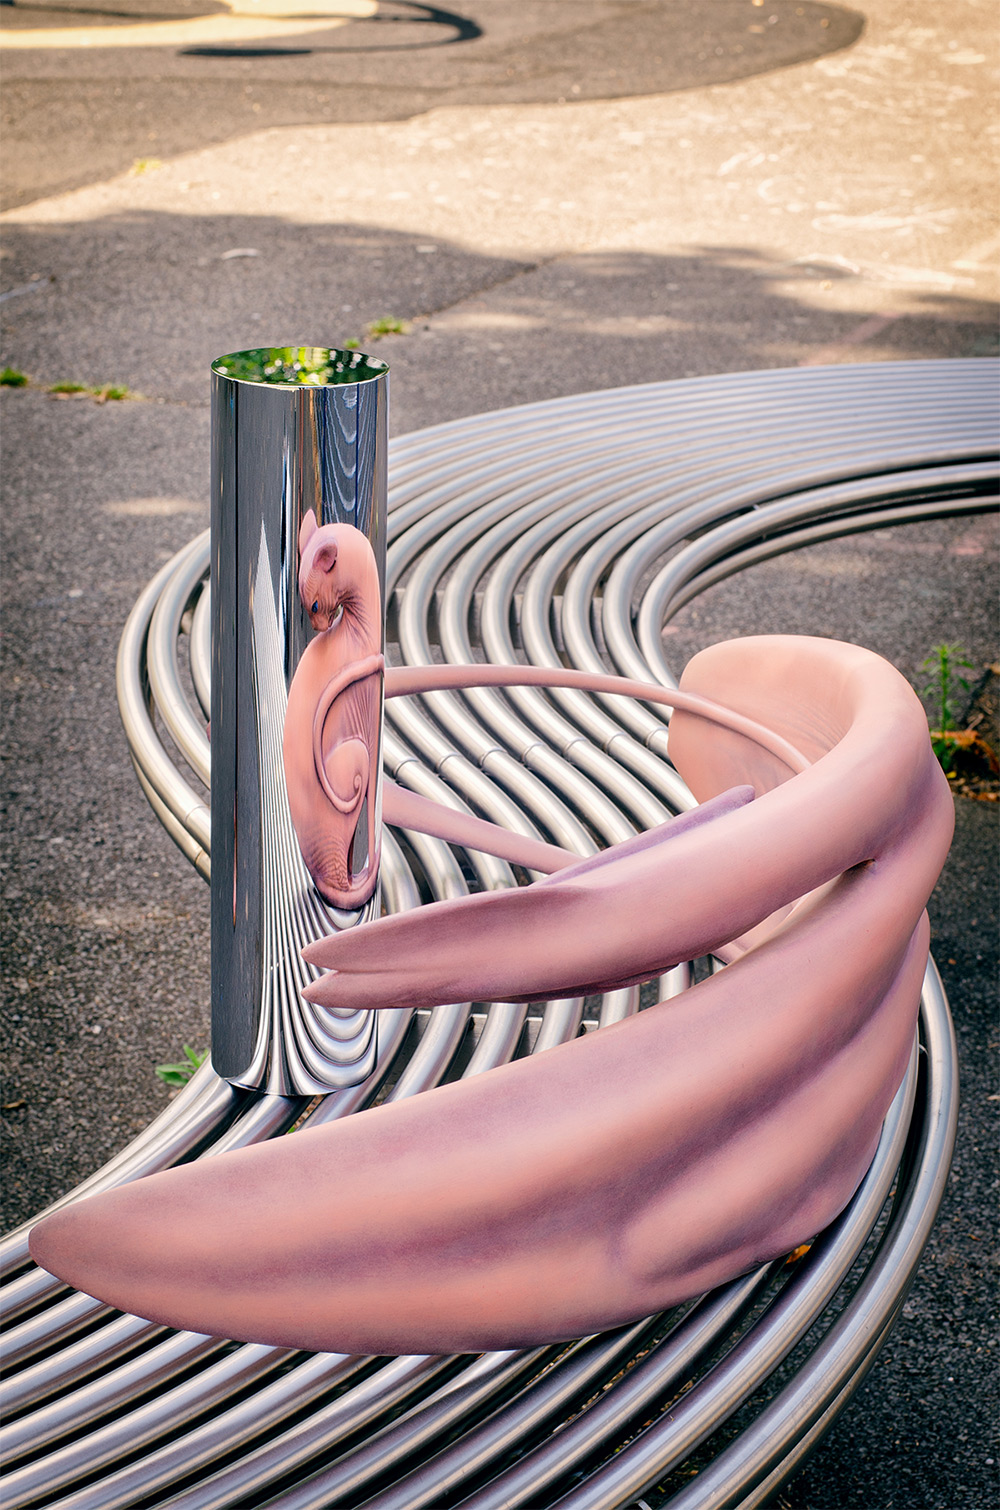 Wild New Anamorphic Sculptures From the Warped Mind of Jonty Hurwitz